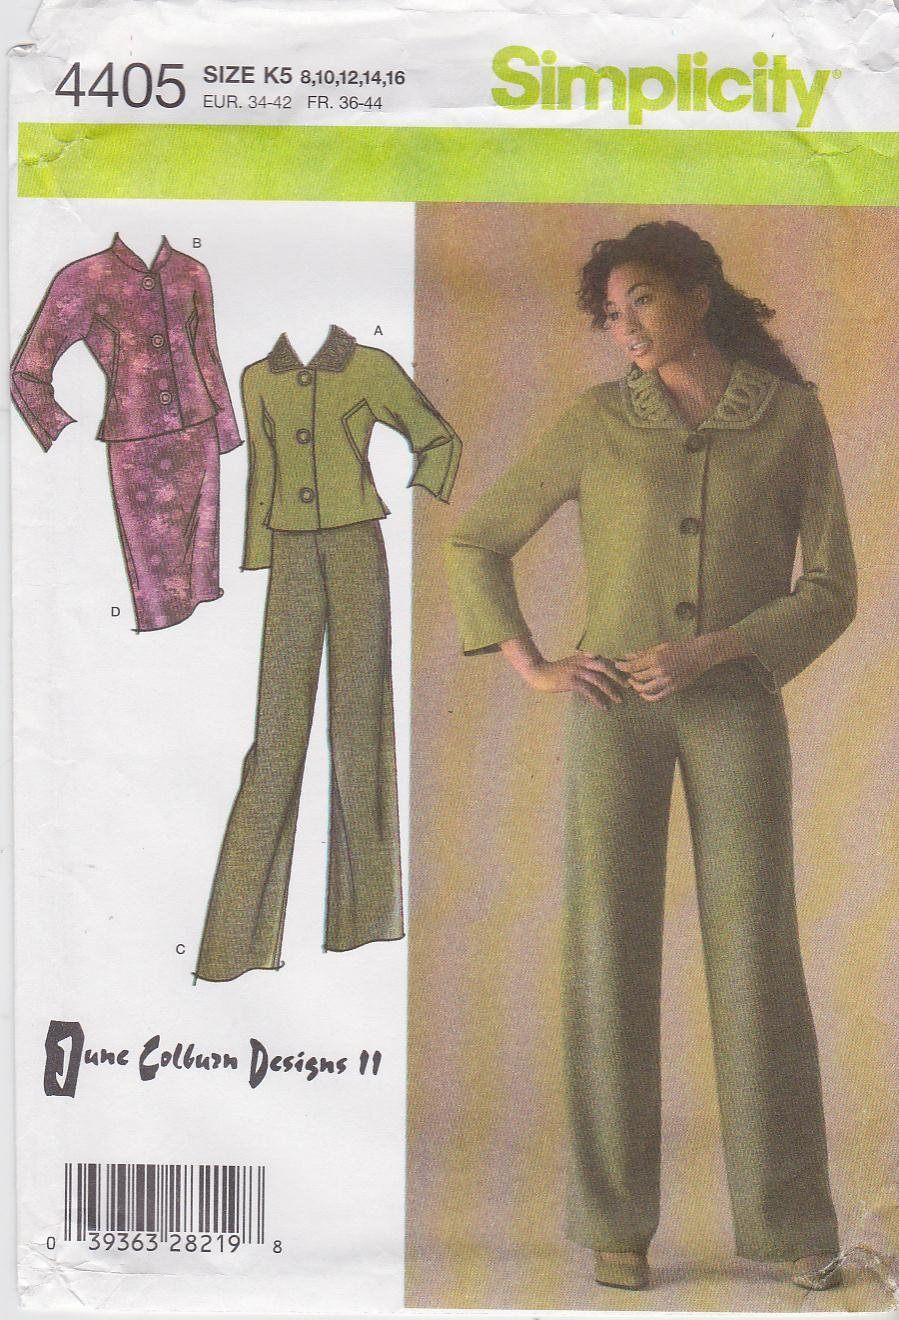 Simplicity Sewing Pattern 4405 Misses Size 8-16 Jacket Skirt Pants Suit Pantsuit June Colburn